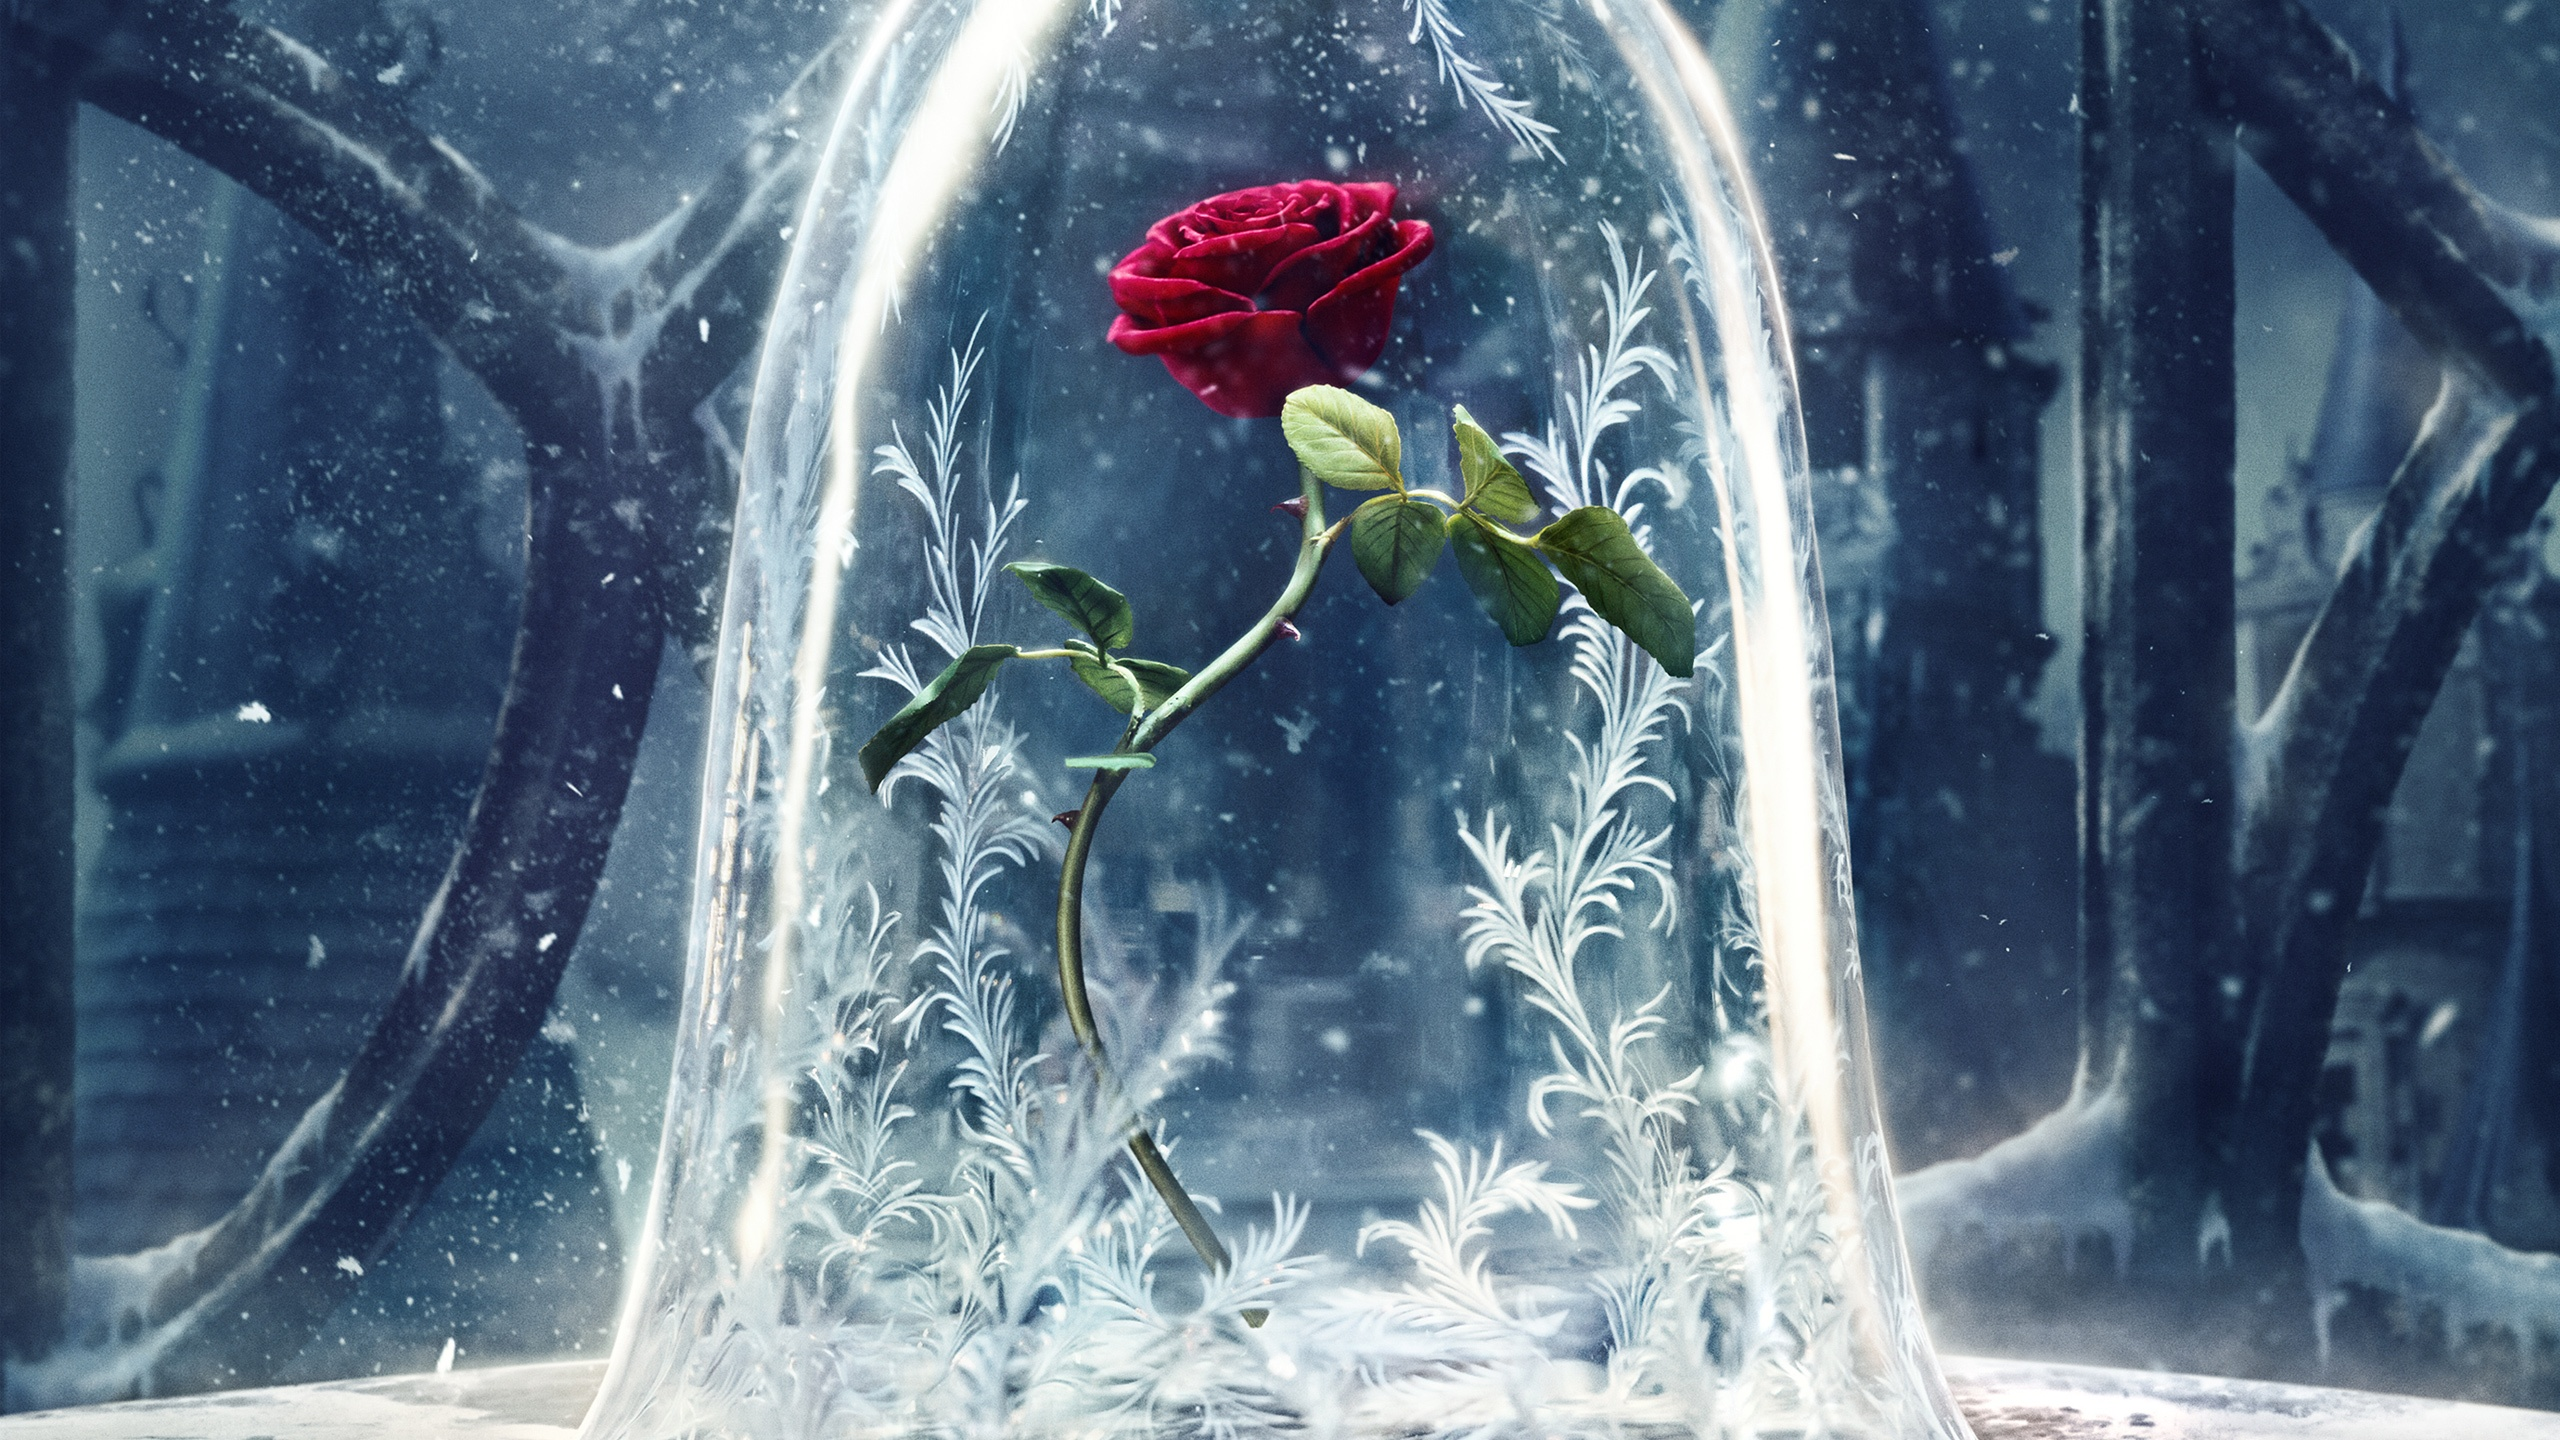 Beauty And The Beast Wallpapers and Background Images   stmednet 2560x1440